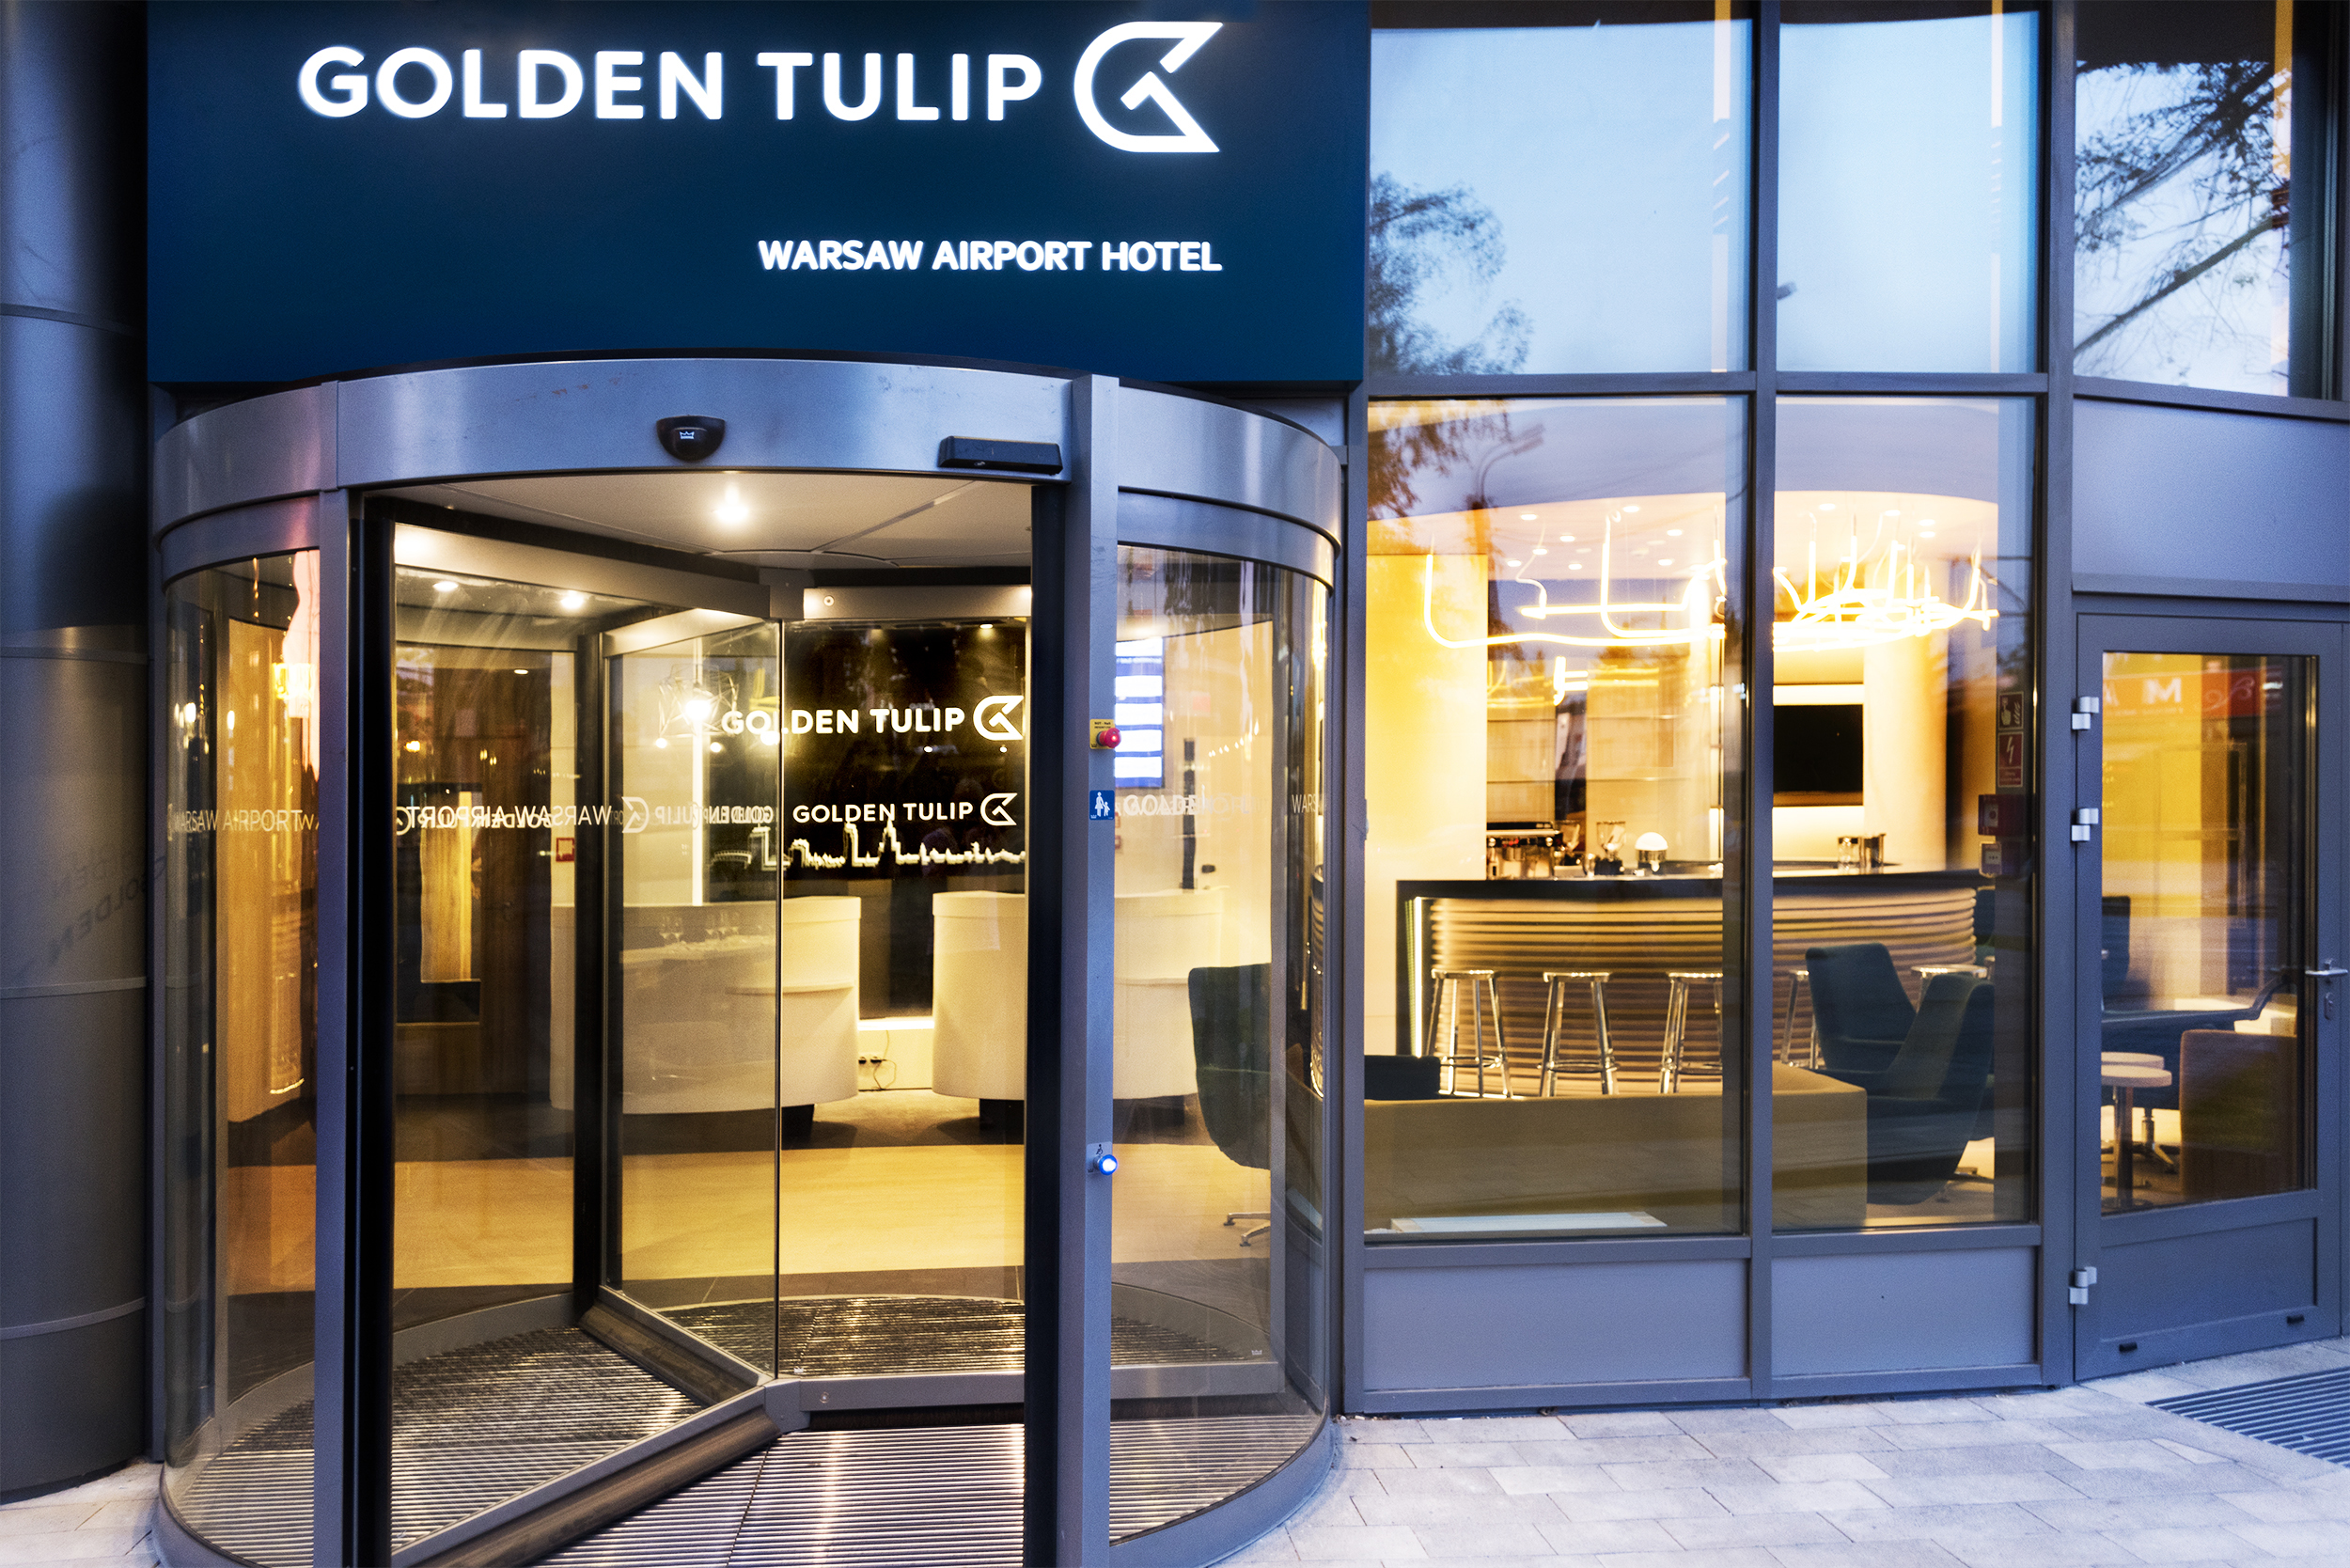 Golden Tulip Warsaw Airport